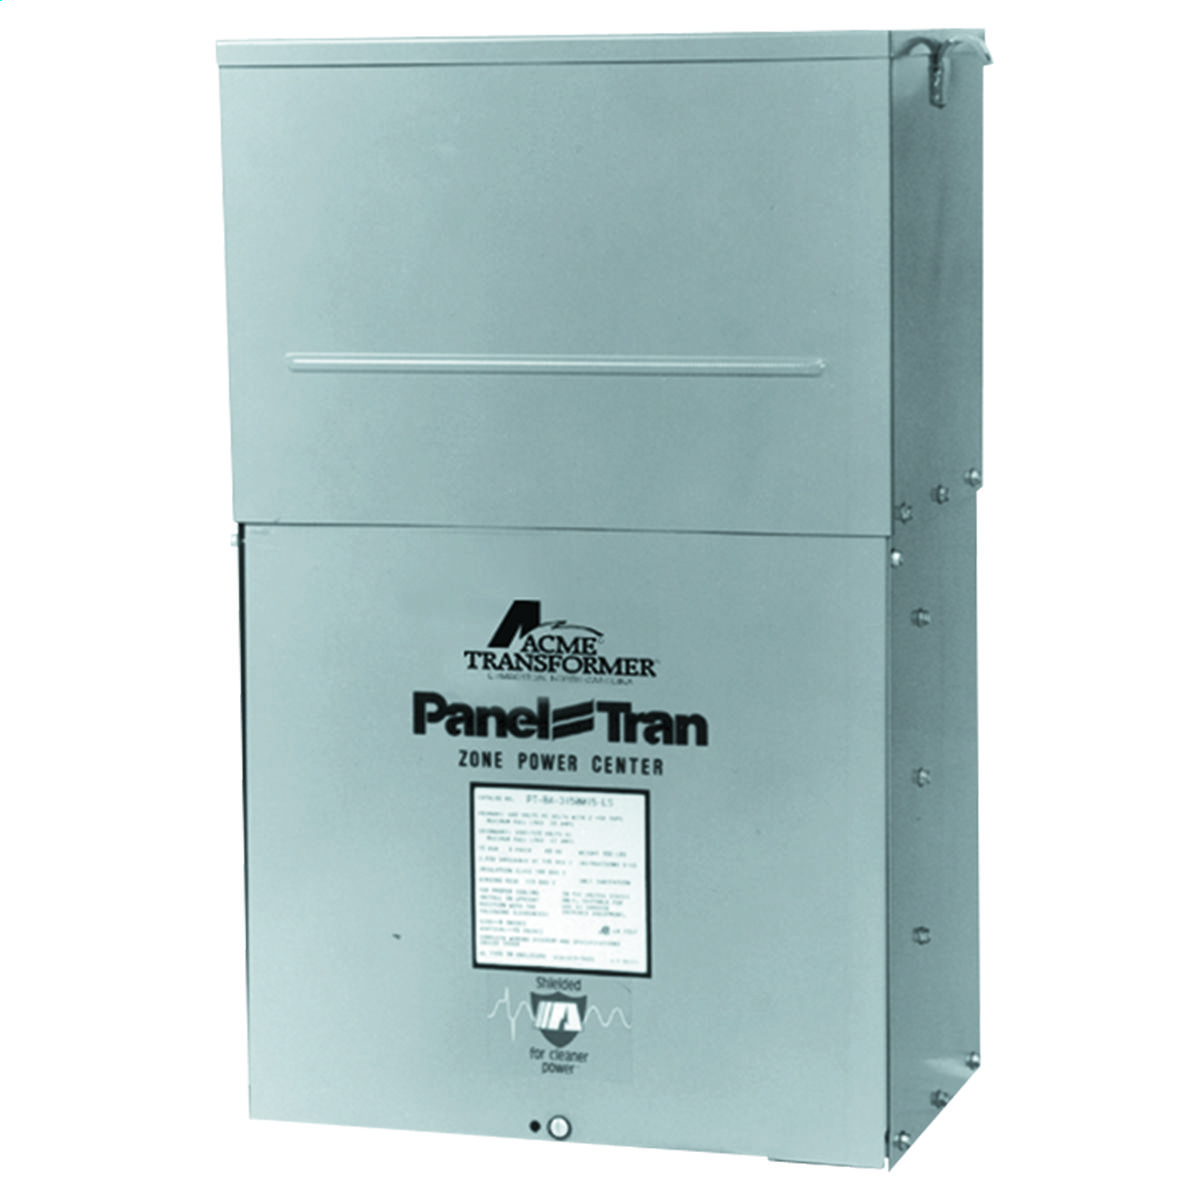 Save Time Space And Money With Acmeelectric Panel Tran Zonepowercenter Combine A Quality Acme Encapsulated Distribut Outdoor Solutions Locker Storage Acme